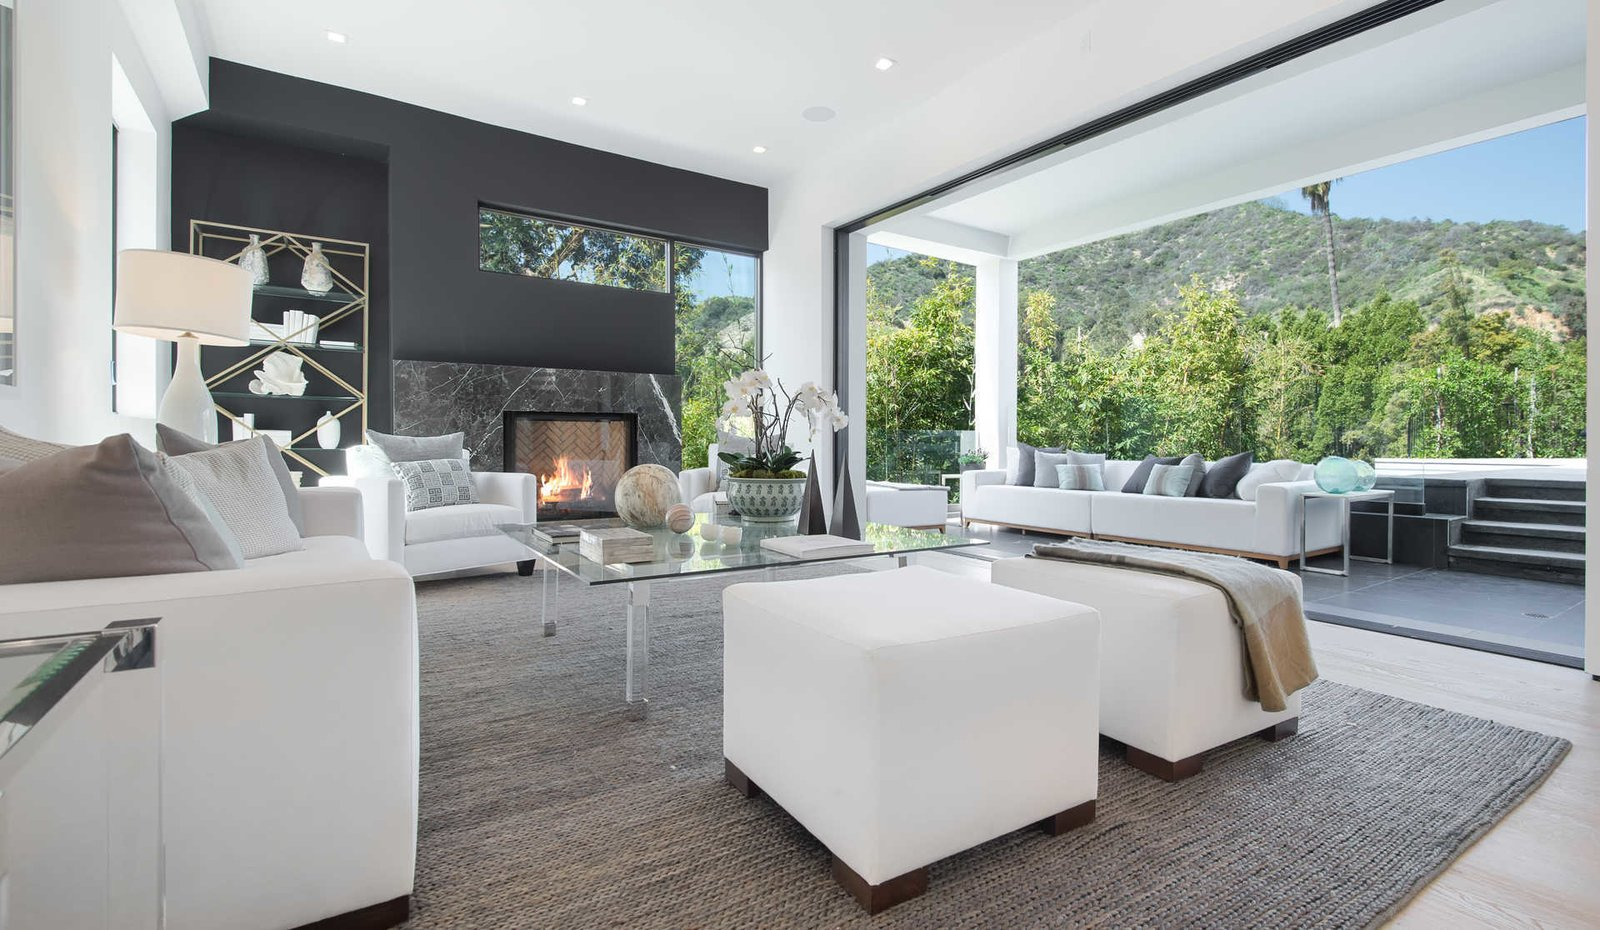 Sliding walls of glass reveal rolling canyons beyond the swimming pool and entertaining areas and create a seamless flow between indoor and outdoor living spaces.  Cherokee Contemporary